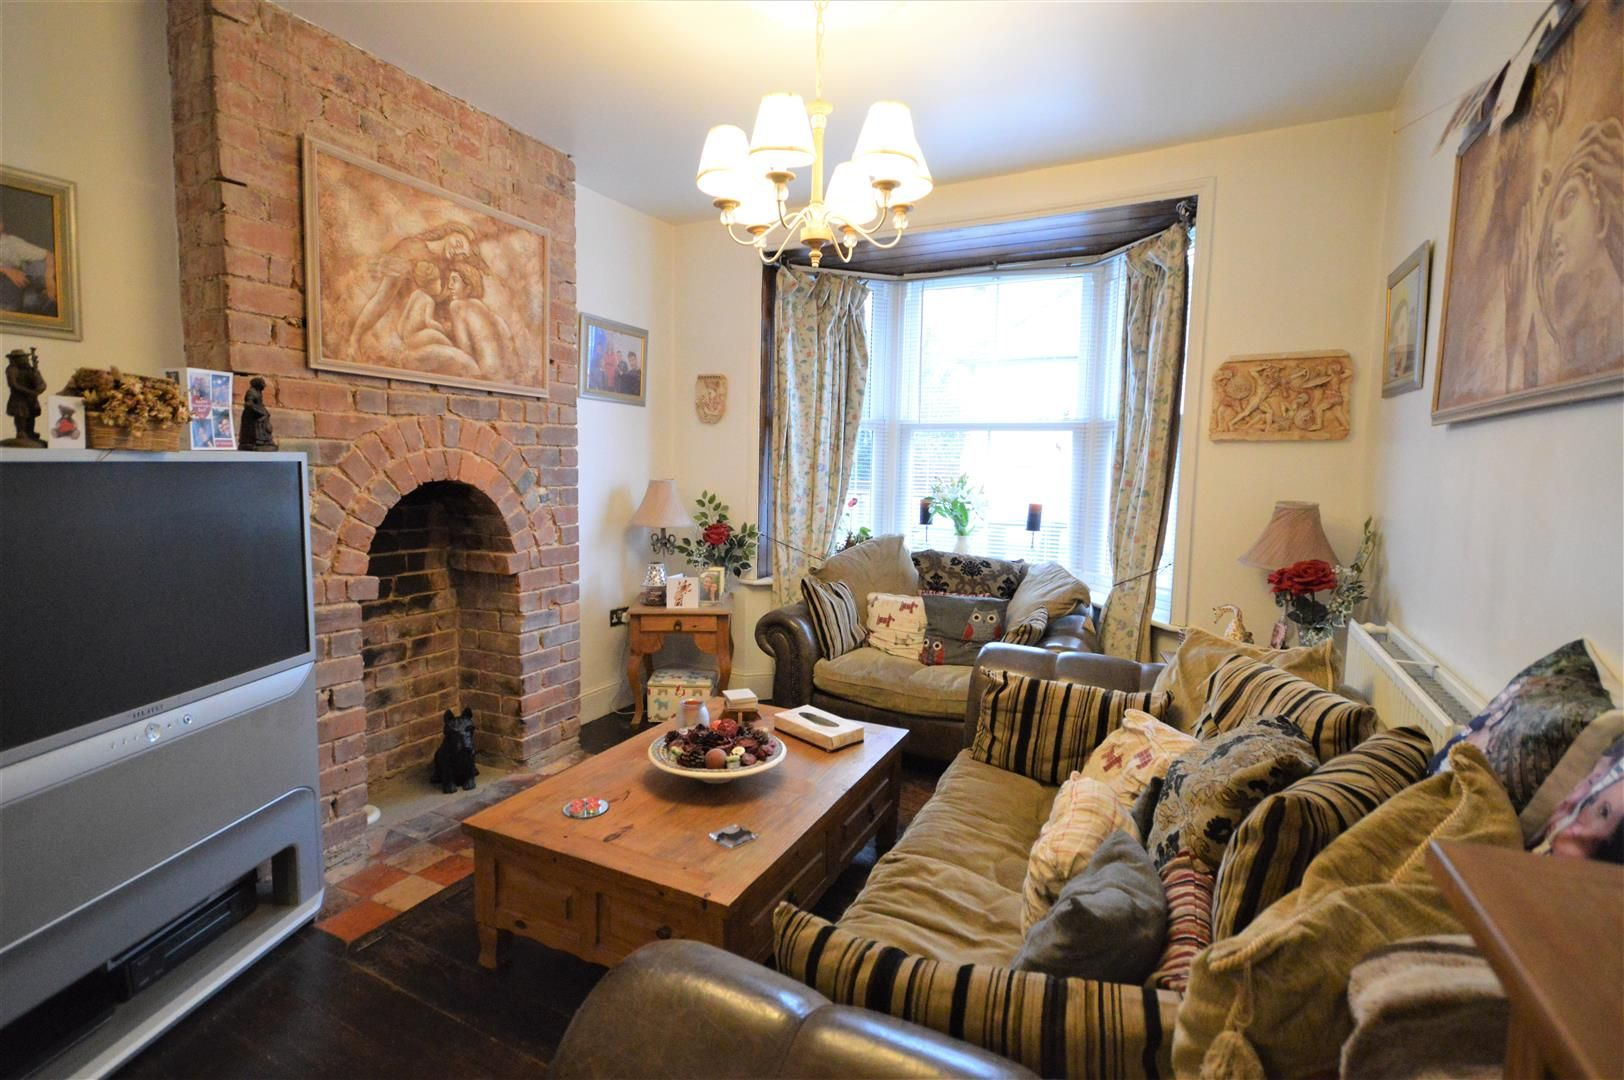 3 bed end of terrace for sale in Leominster 3